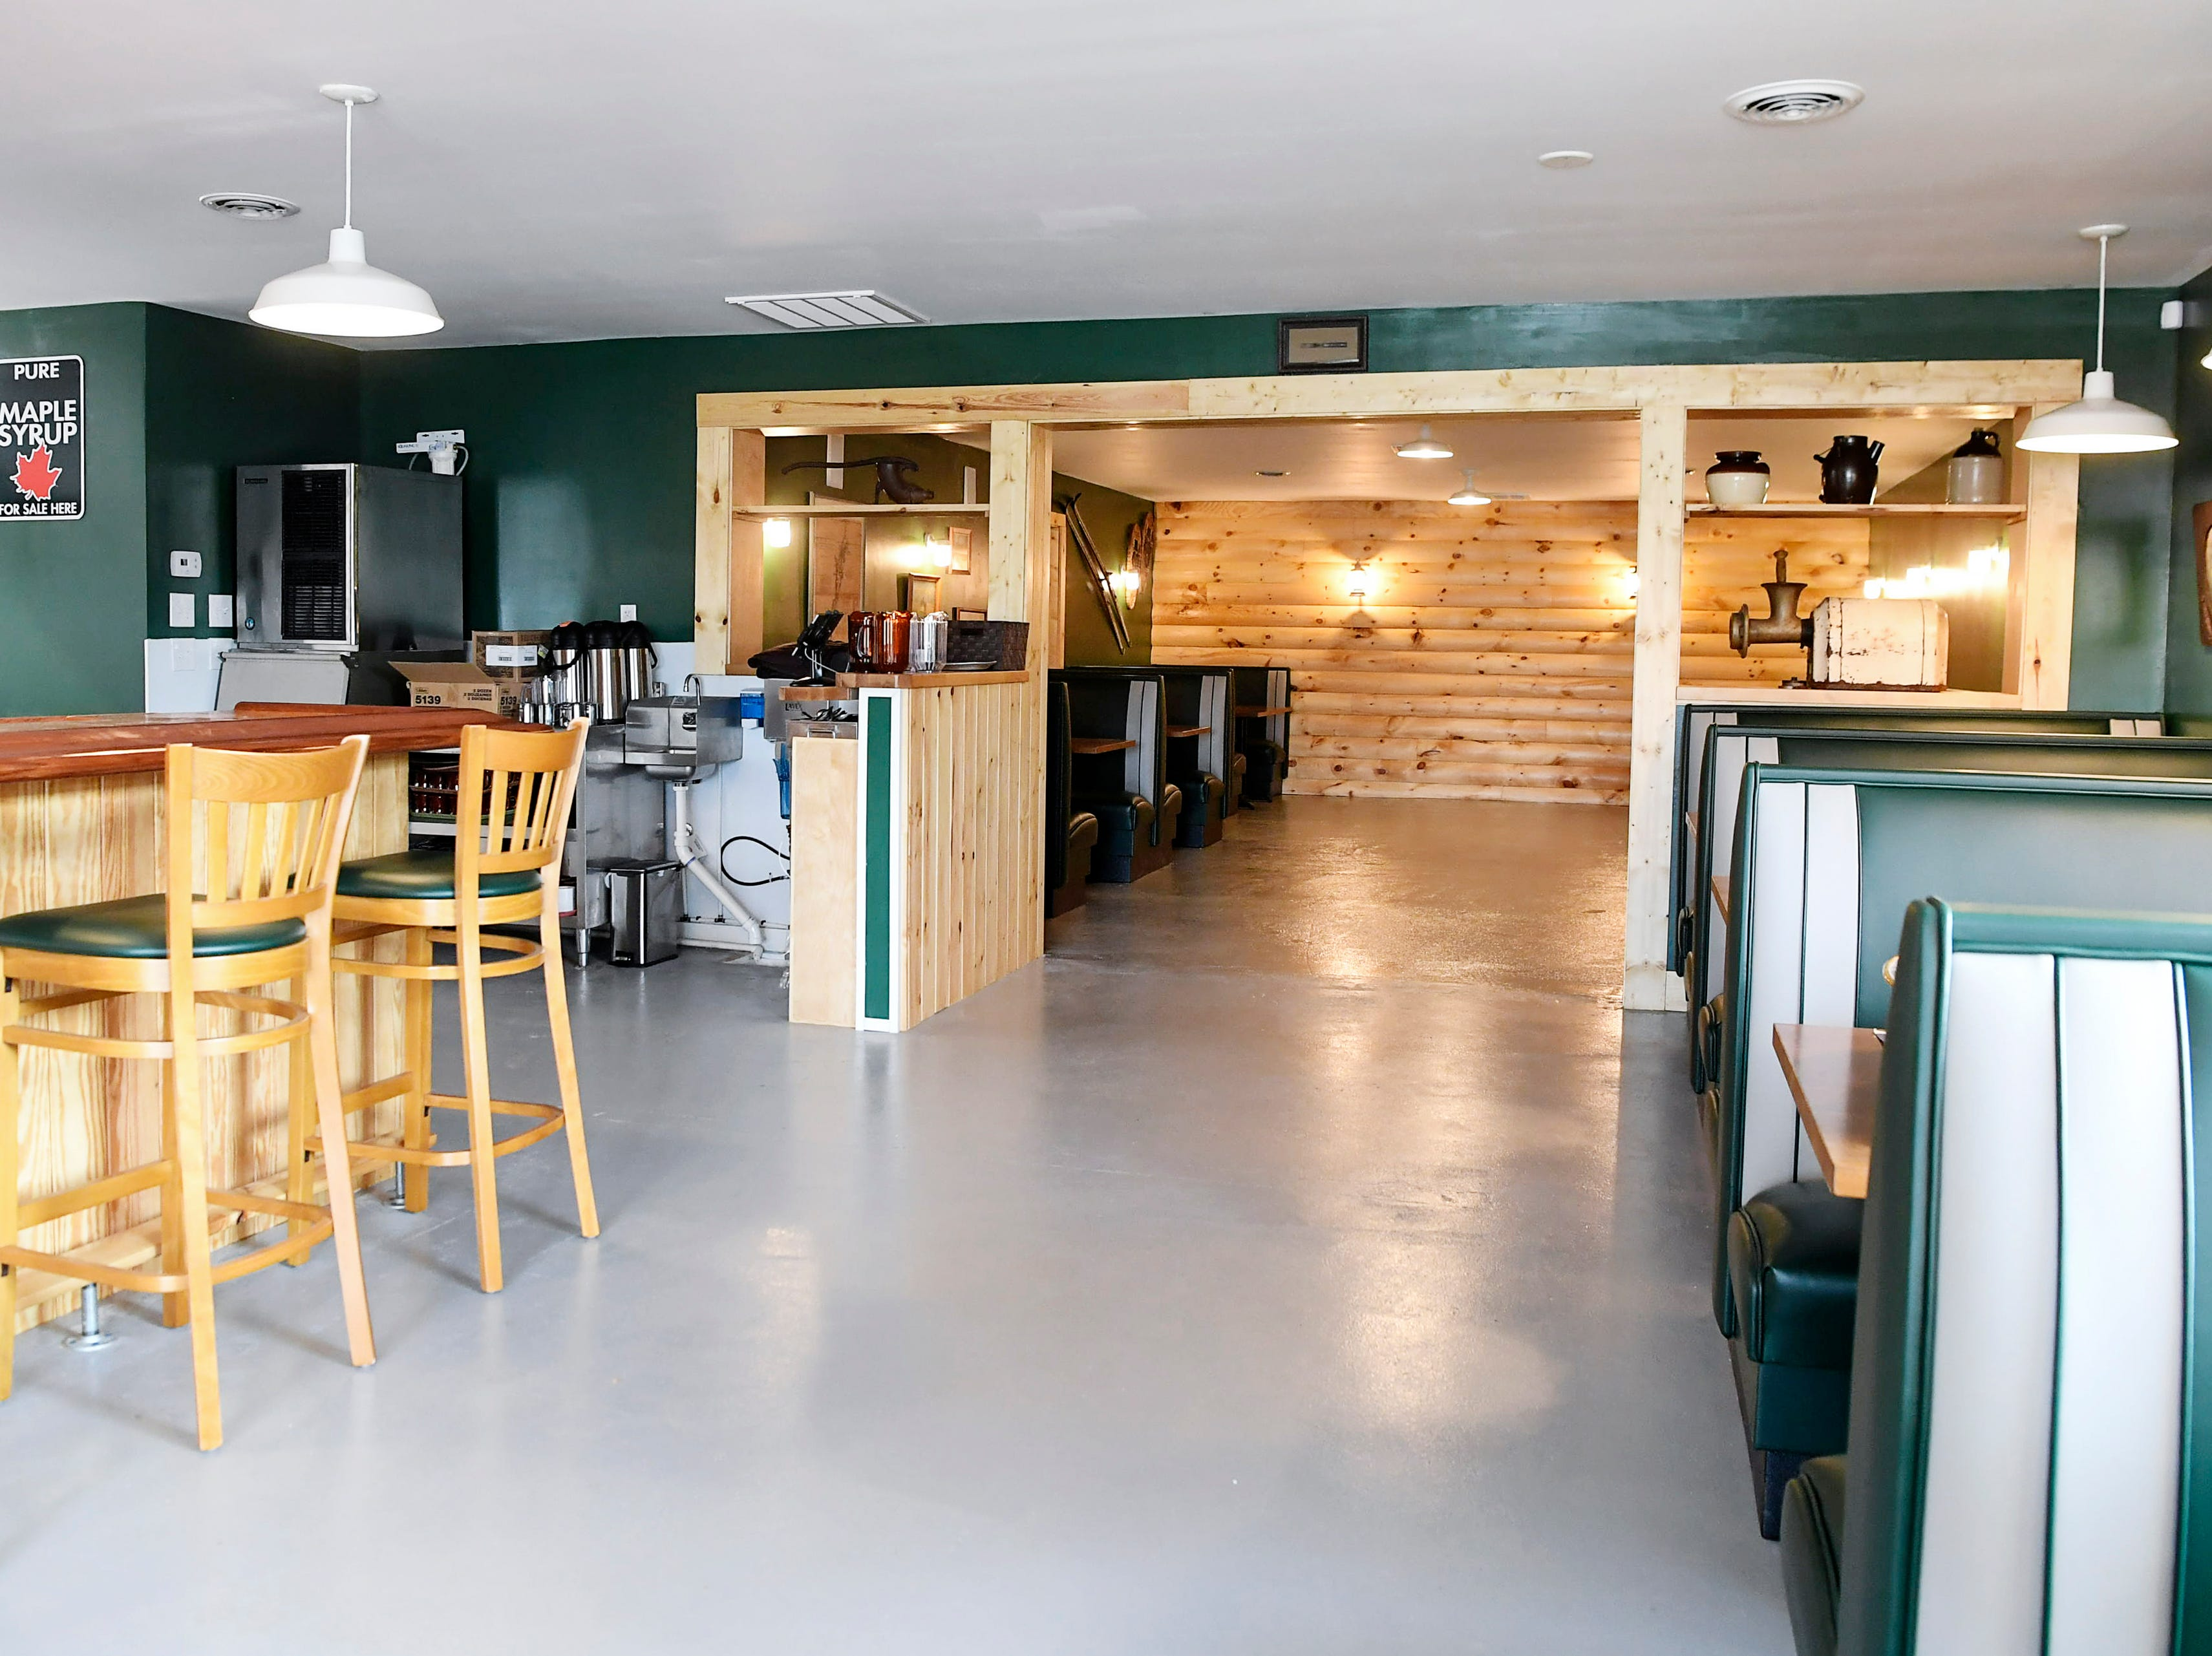 Sawhorse, a new restaurantfrom former Buxton Hall sous chef Dan Silo, is opening soon on Leicester Highway.